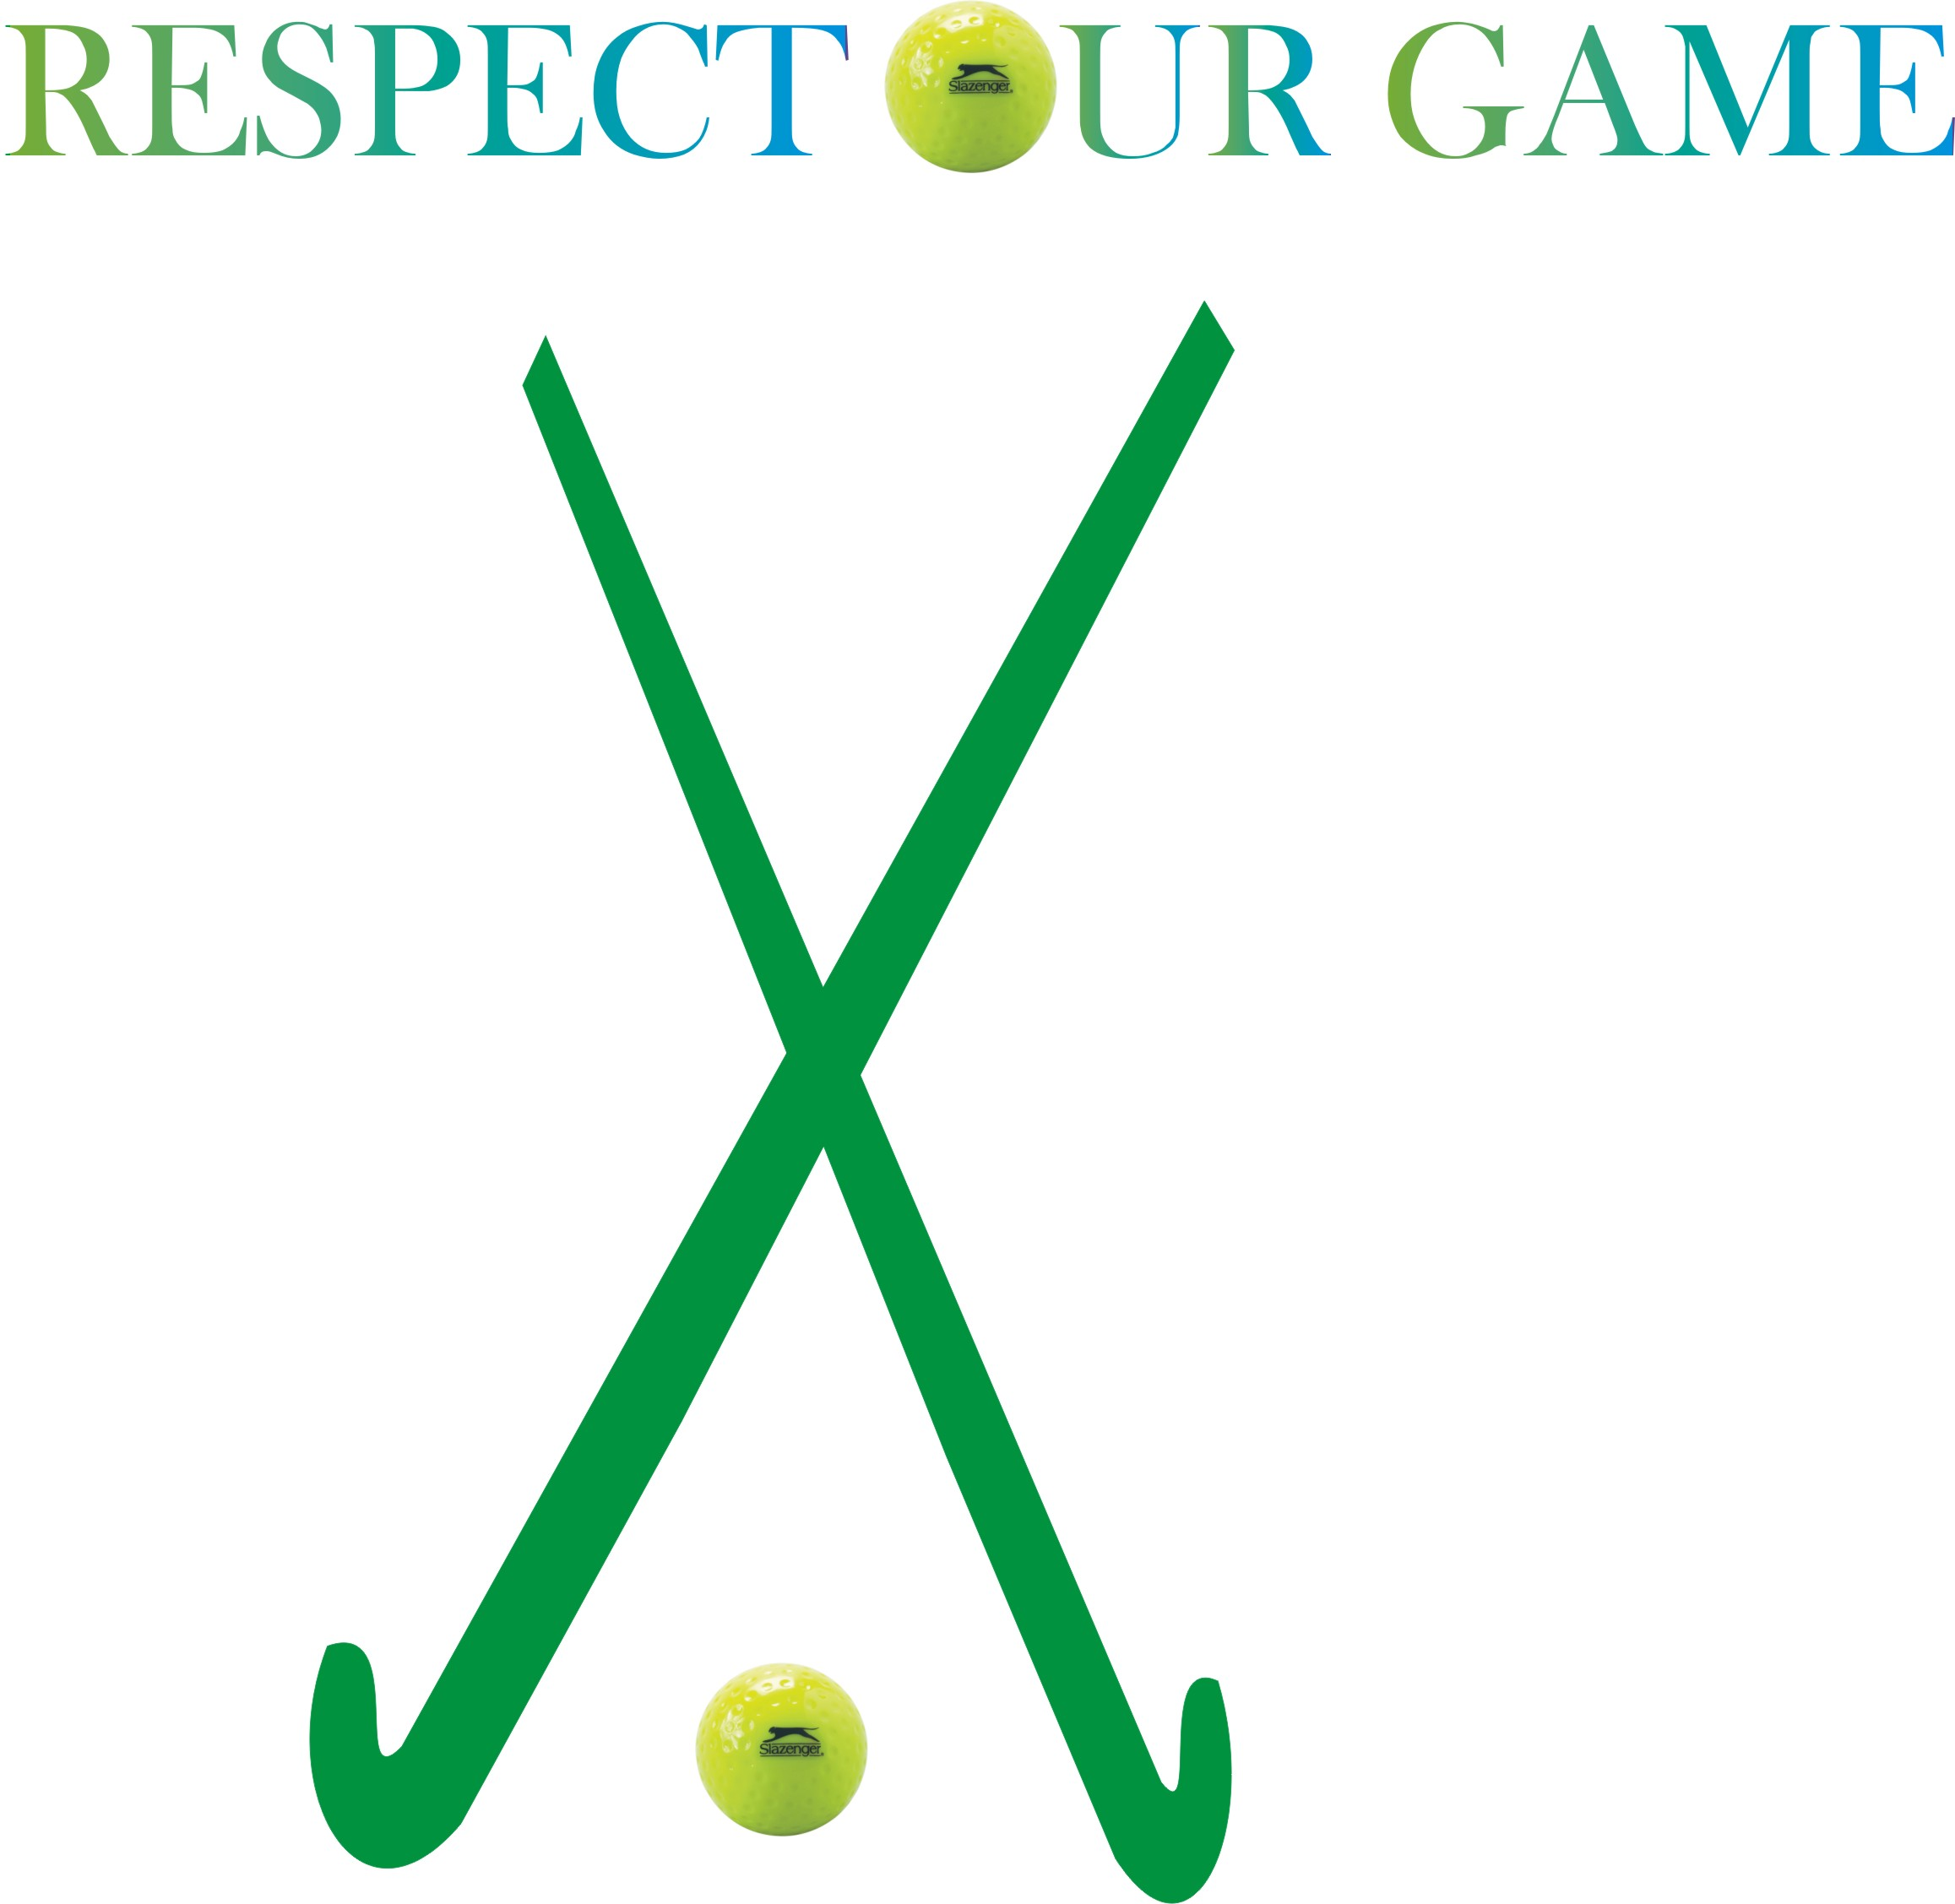 Logo Design by Darshan Sahh - Entry No. 16 in the Logo Design Contest Respect our game - North Van Minor Hockey Logo Design.